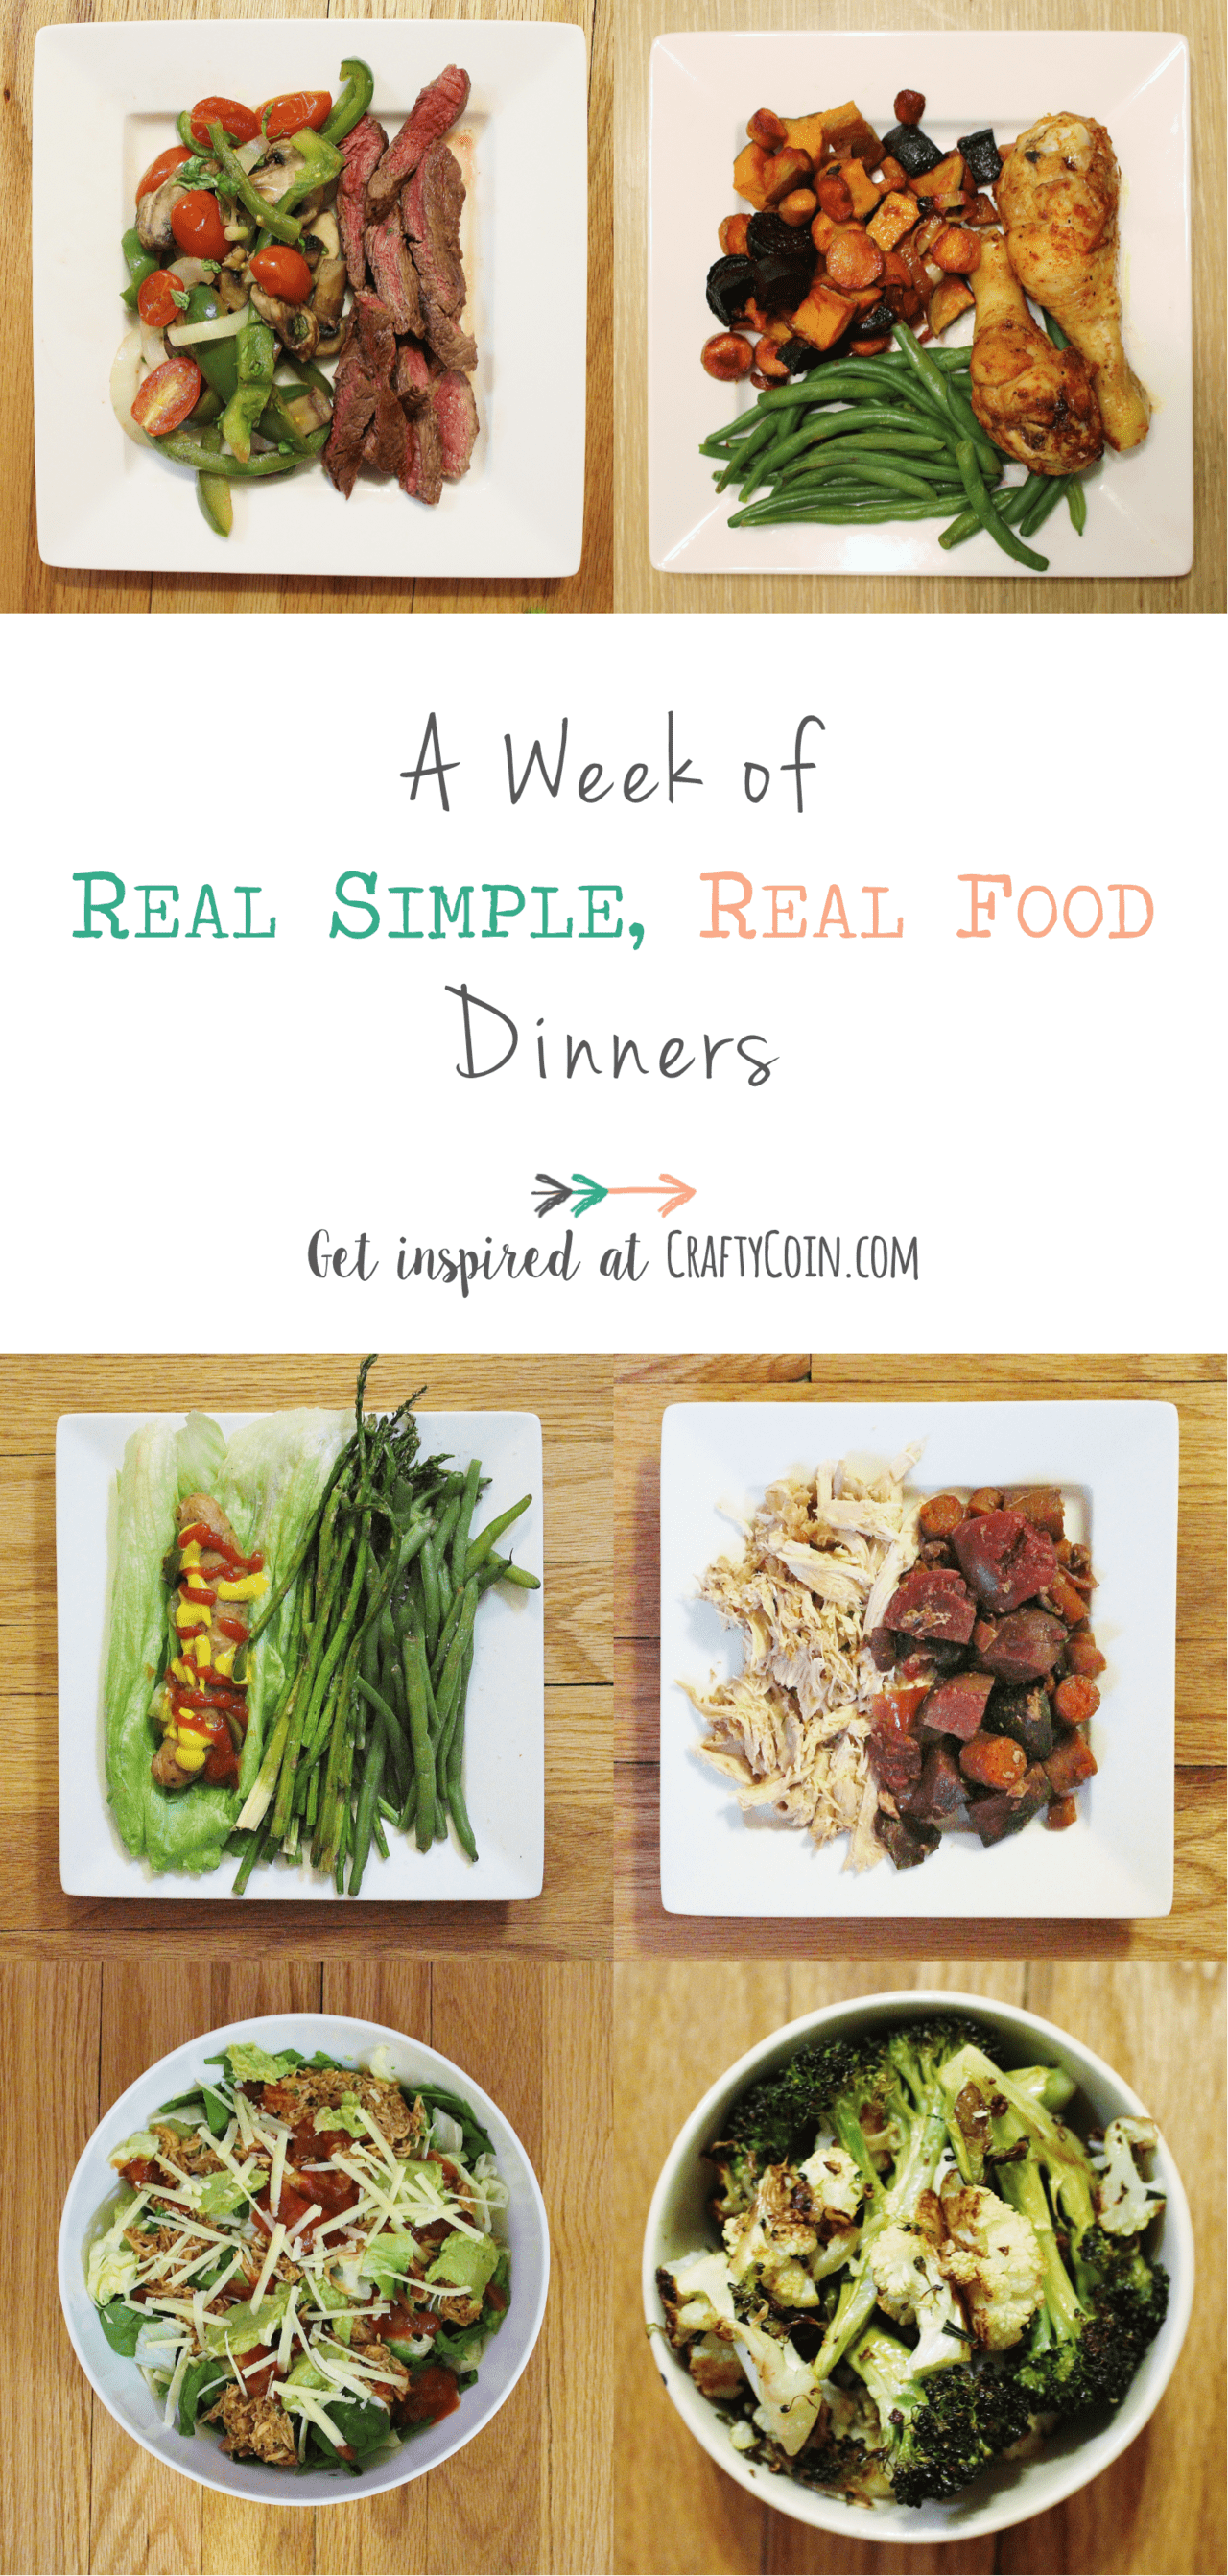 A week of real simple real food dinners crafty coin a week of real simple real food dinners crafty coin forumfinder Image collections